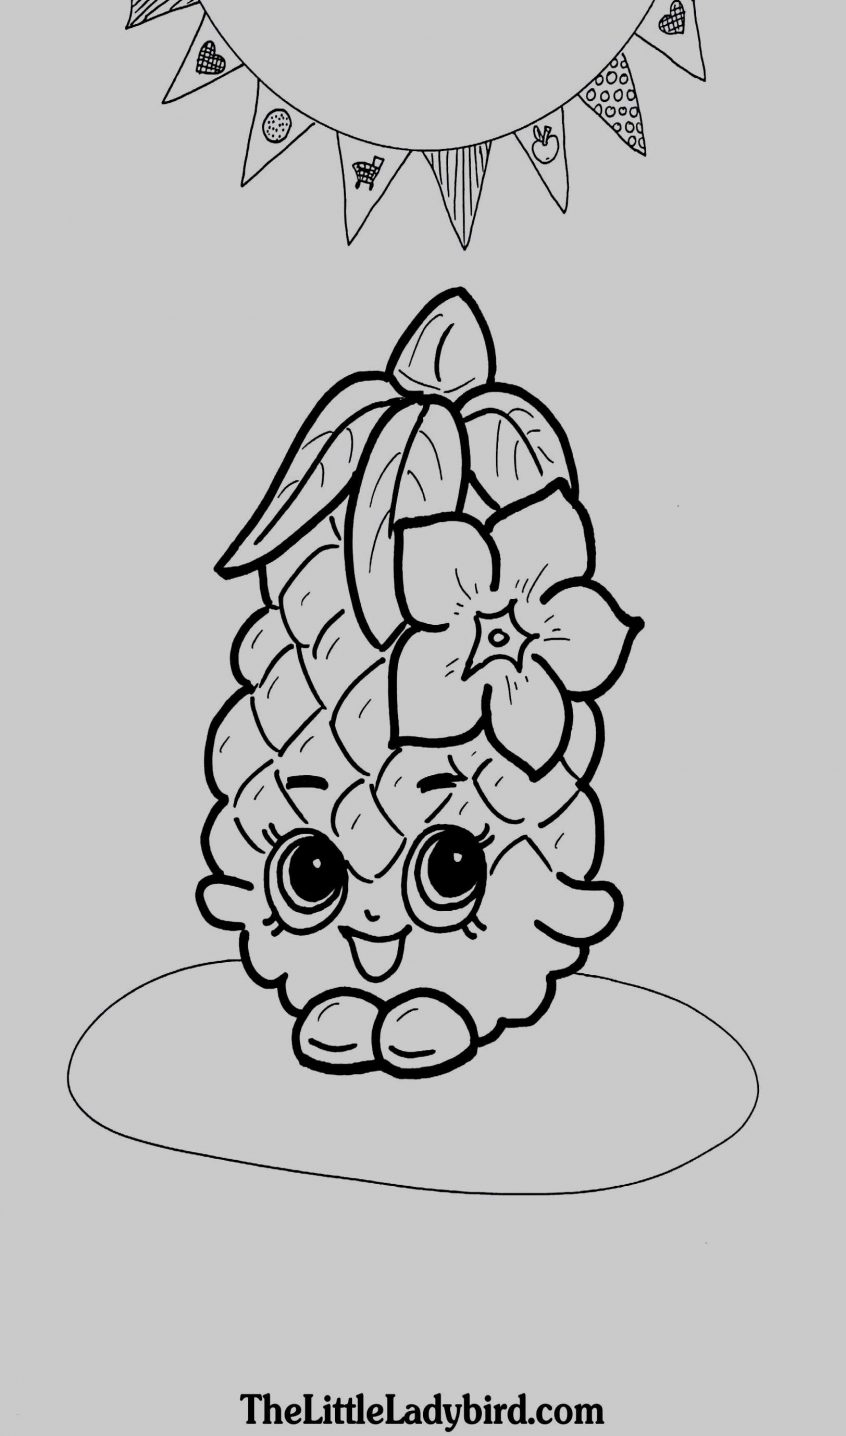 Crayon Coloring Pages Printable Coloring Free Printable Anatomy Coloring Pages Kids To Print For Of